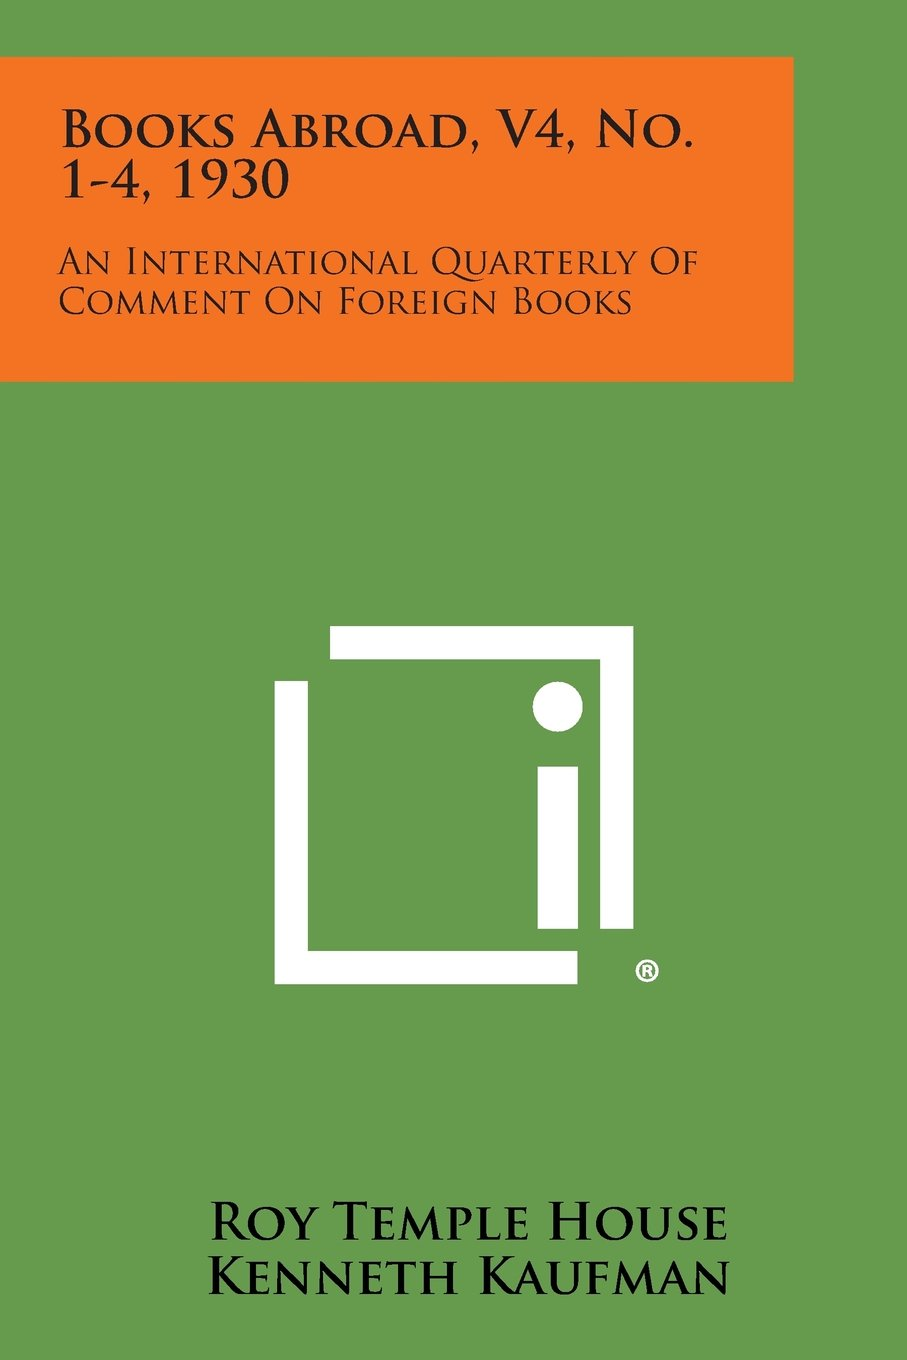 Books Abroad, V4, No. 1-4, 1930: An International Quarterly of Comment on Foreign Books PDF